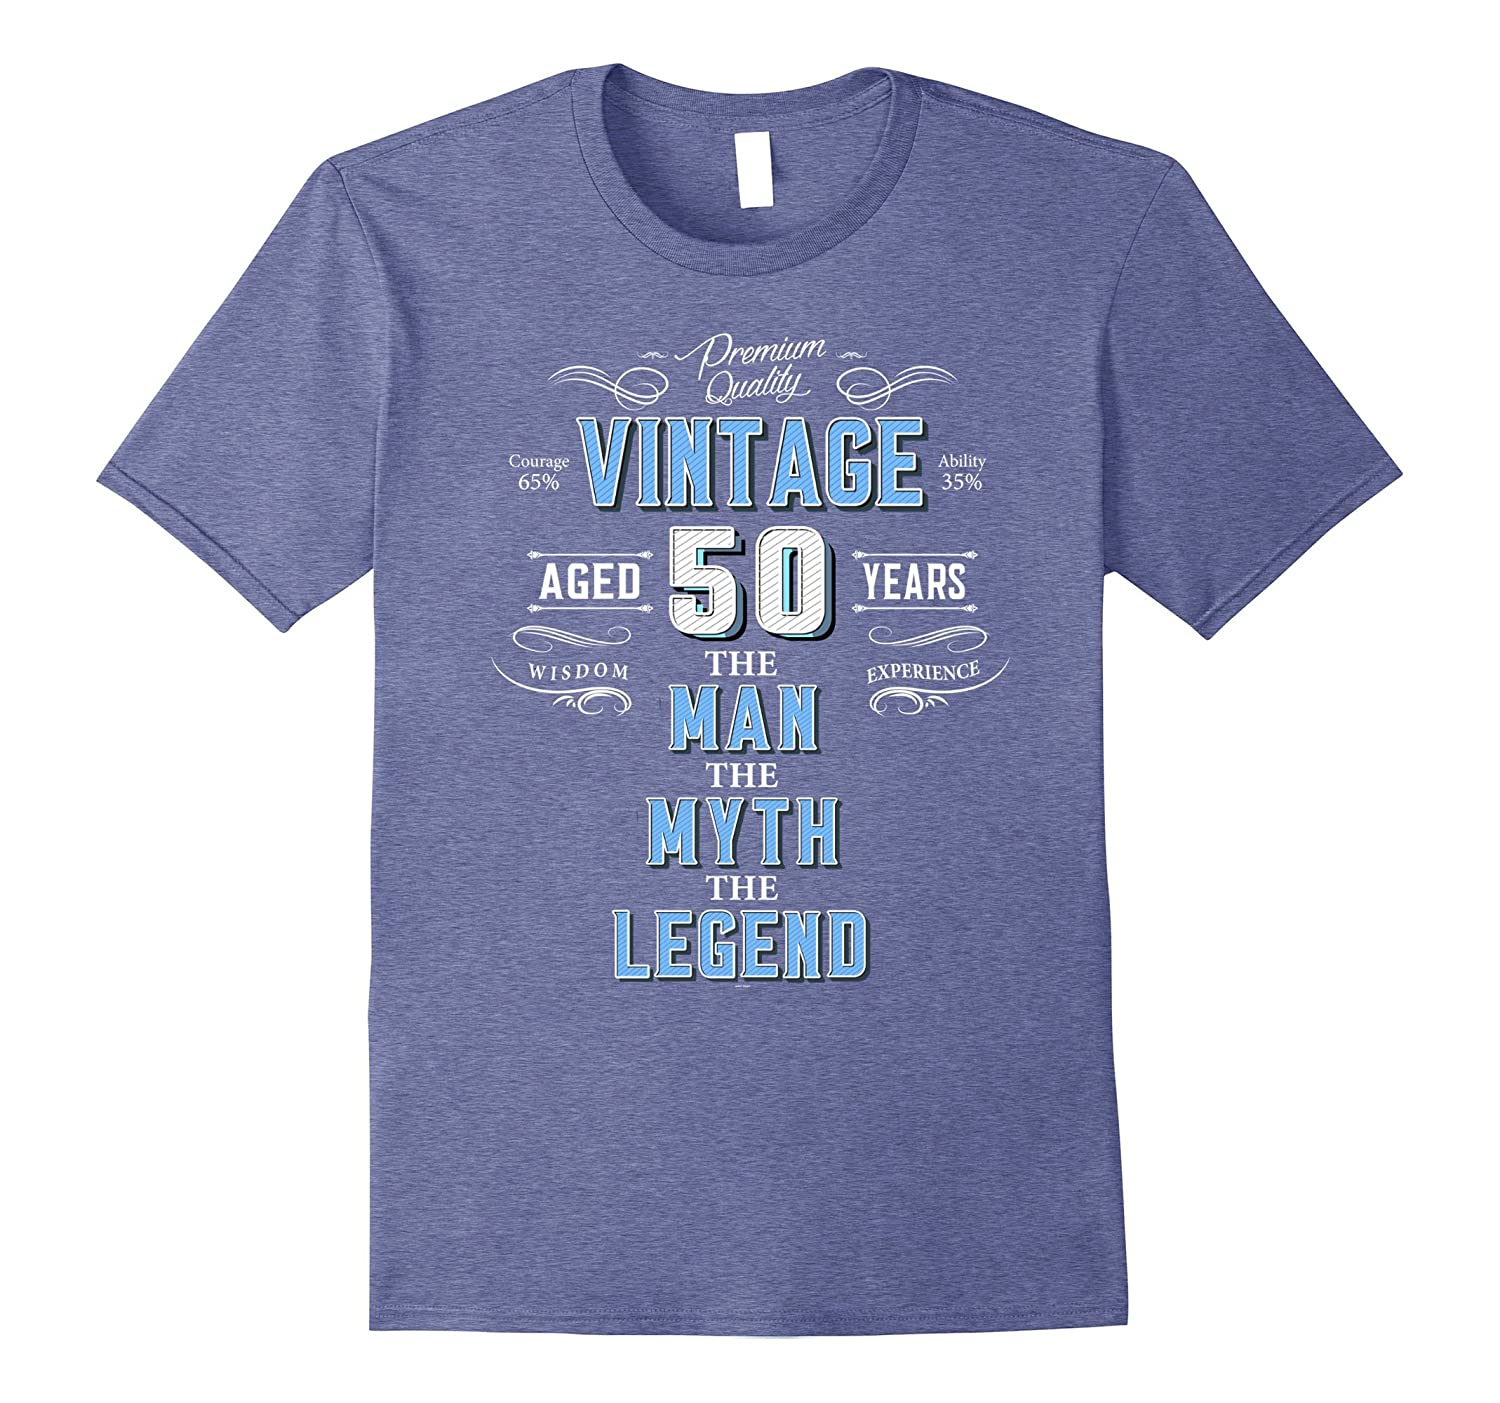 Mens Vintage 50th Birthday Tshirt For Men Aged 50 Years Old Tee TH